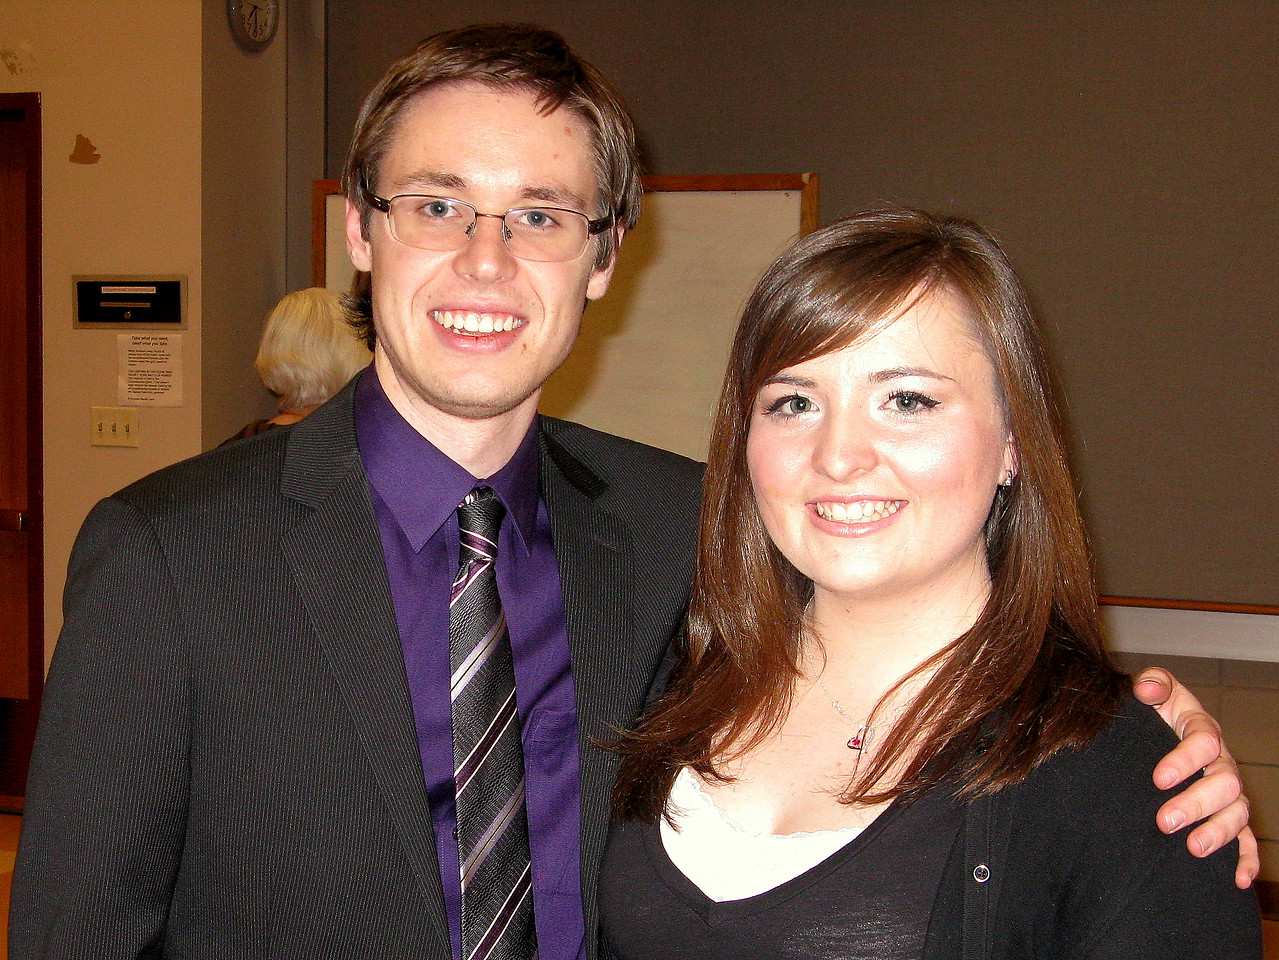 Kevin and Becca.